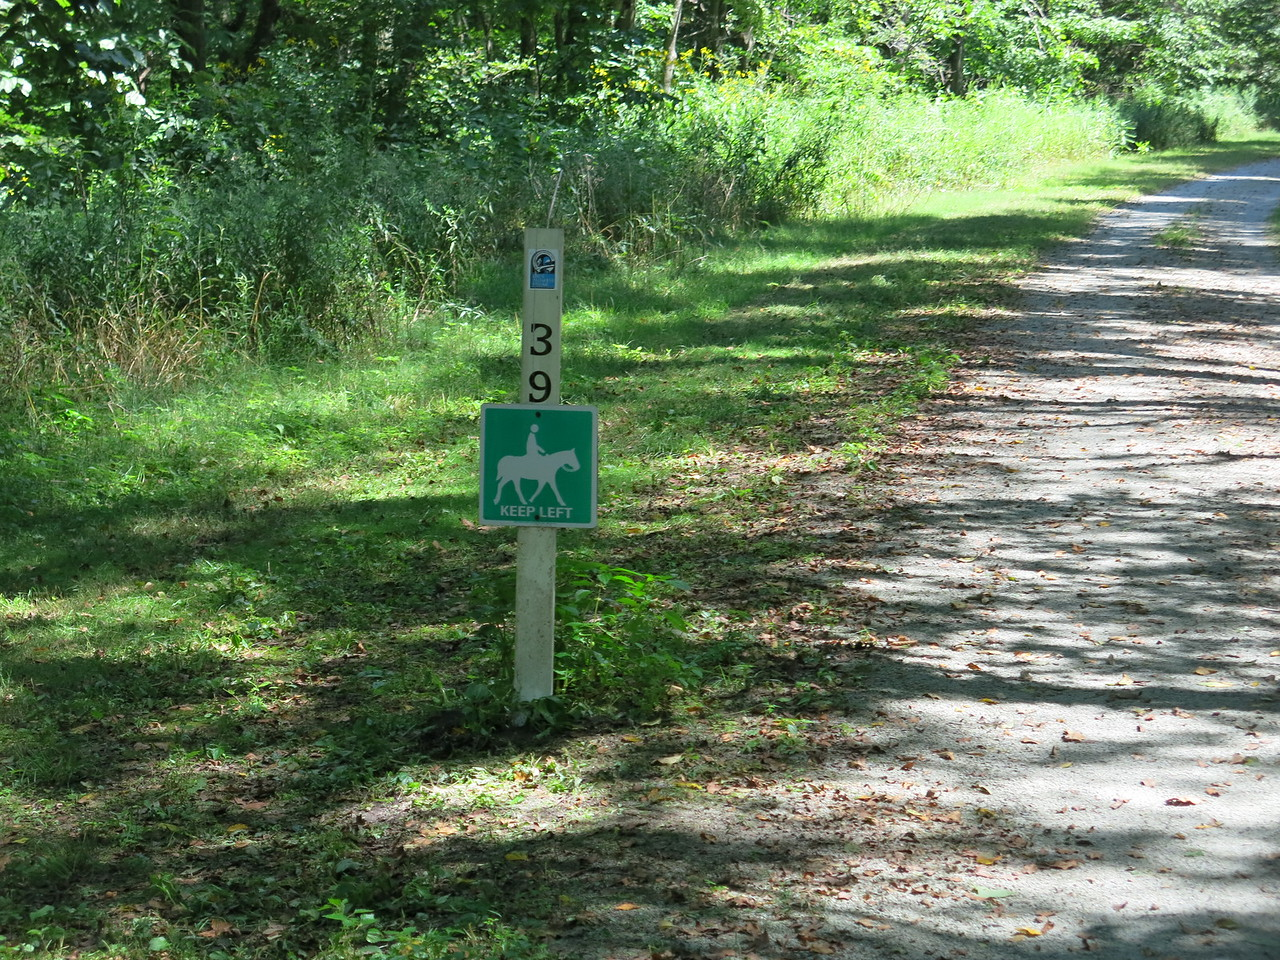 On this section, we share the trail with horses,  MP 39